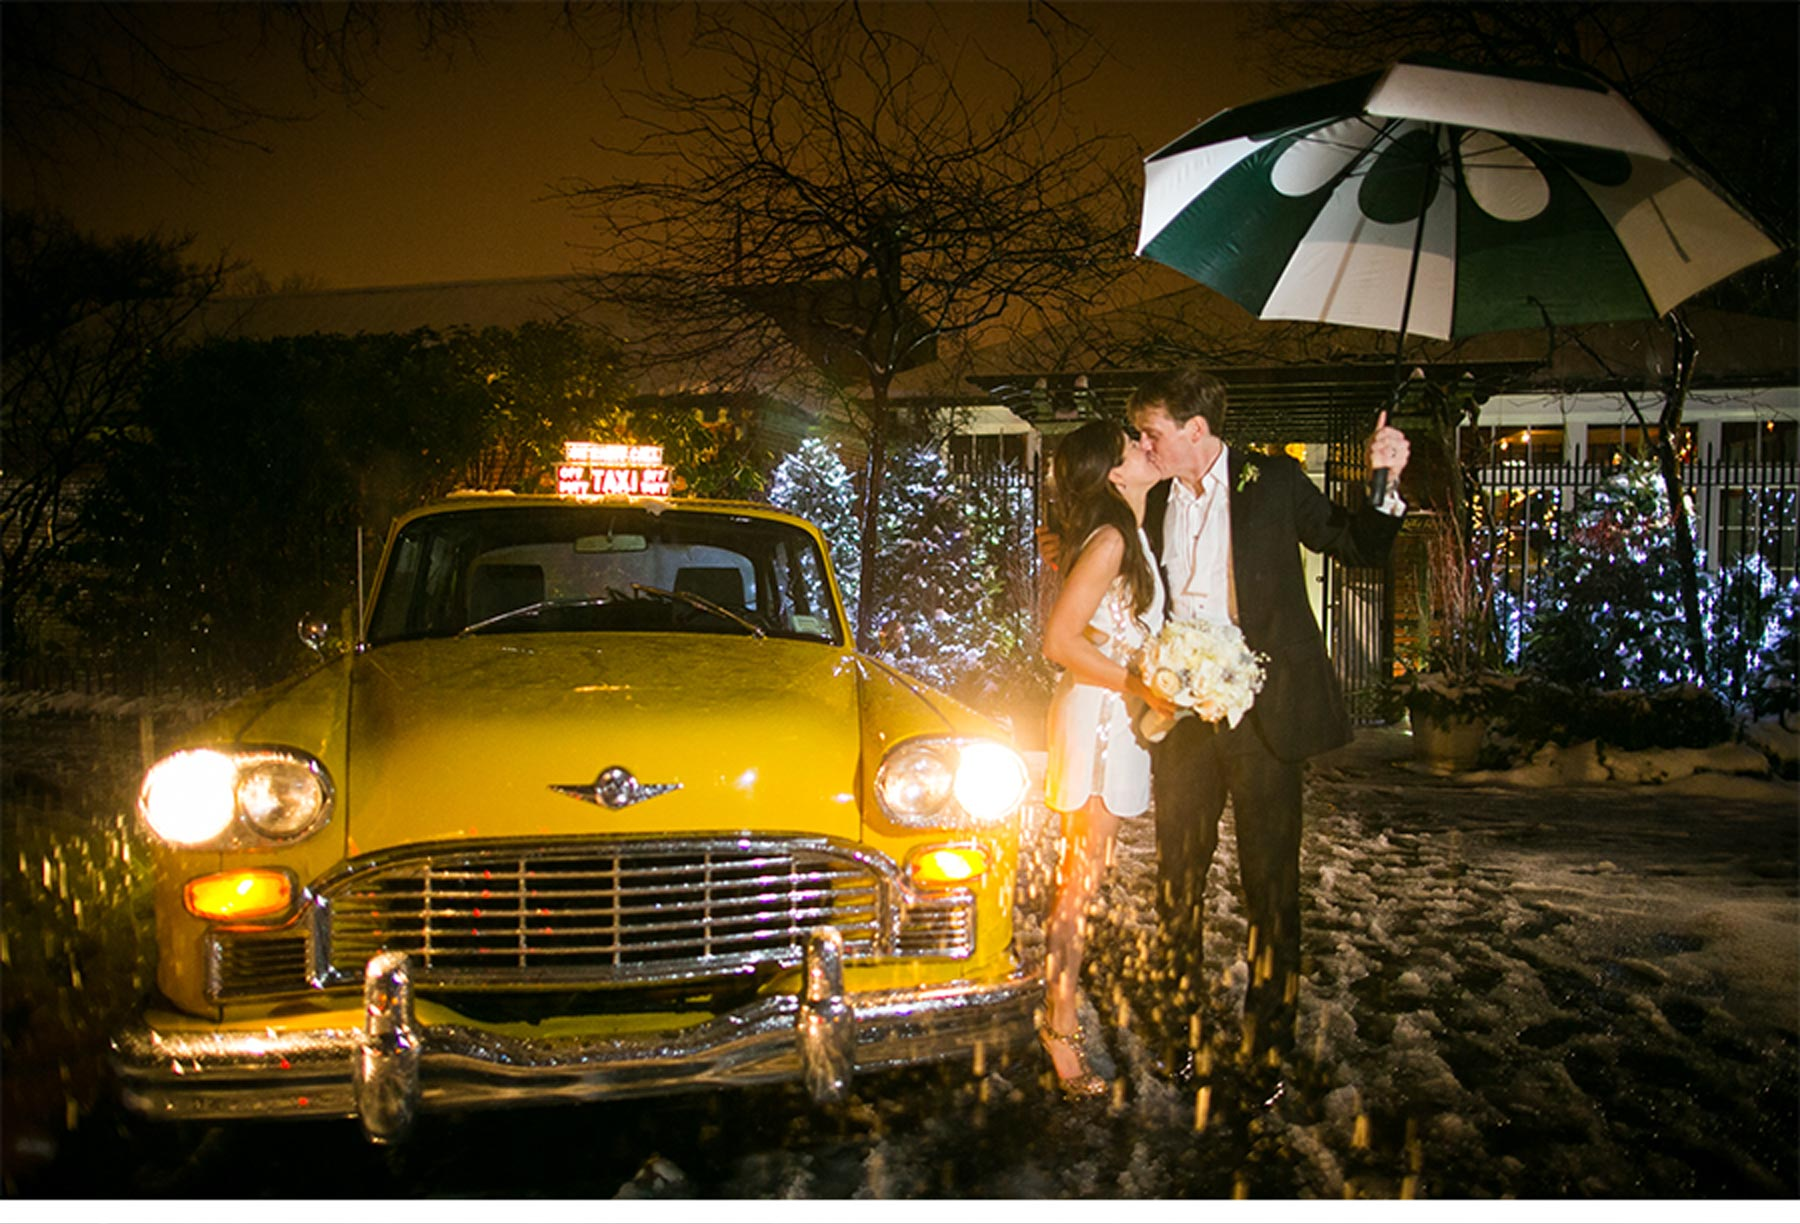 Our Muse - Winter Wedding at The Loeb Boathouse Central Park - Be inspired by Carter & V232: Our Muse - Winter Wedding at the Loeb Boathouse Central Park ...